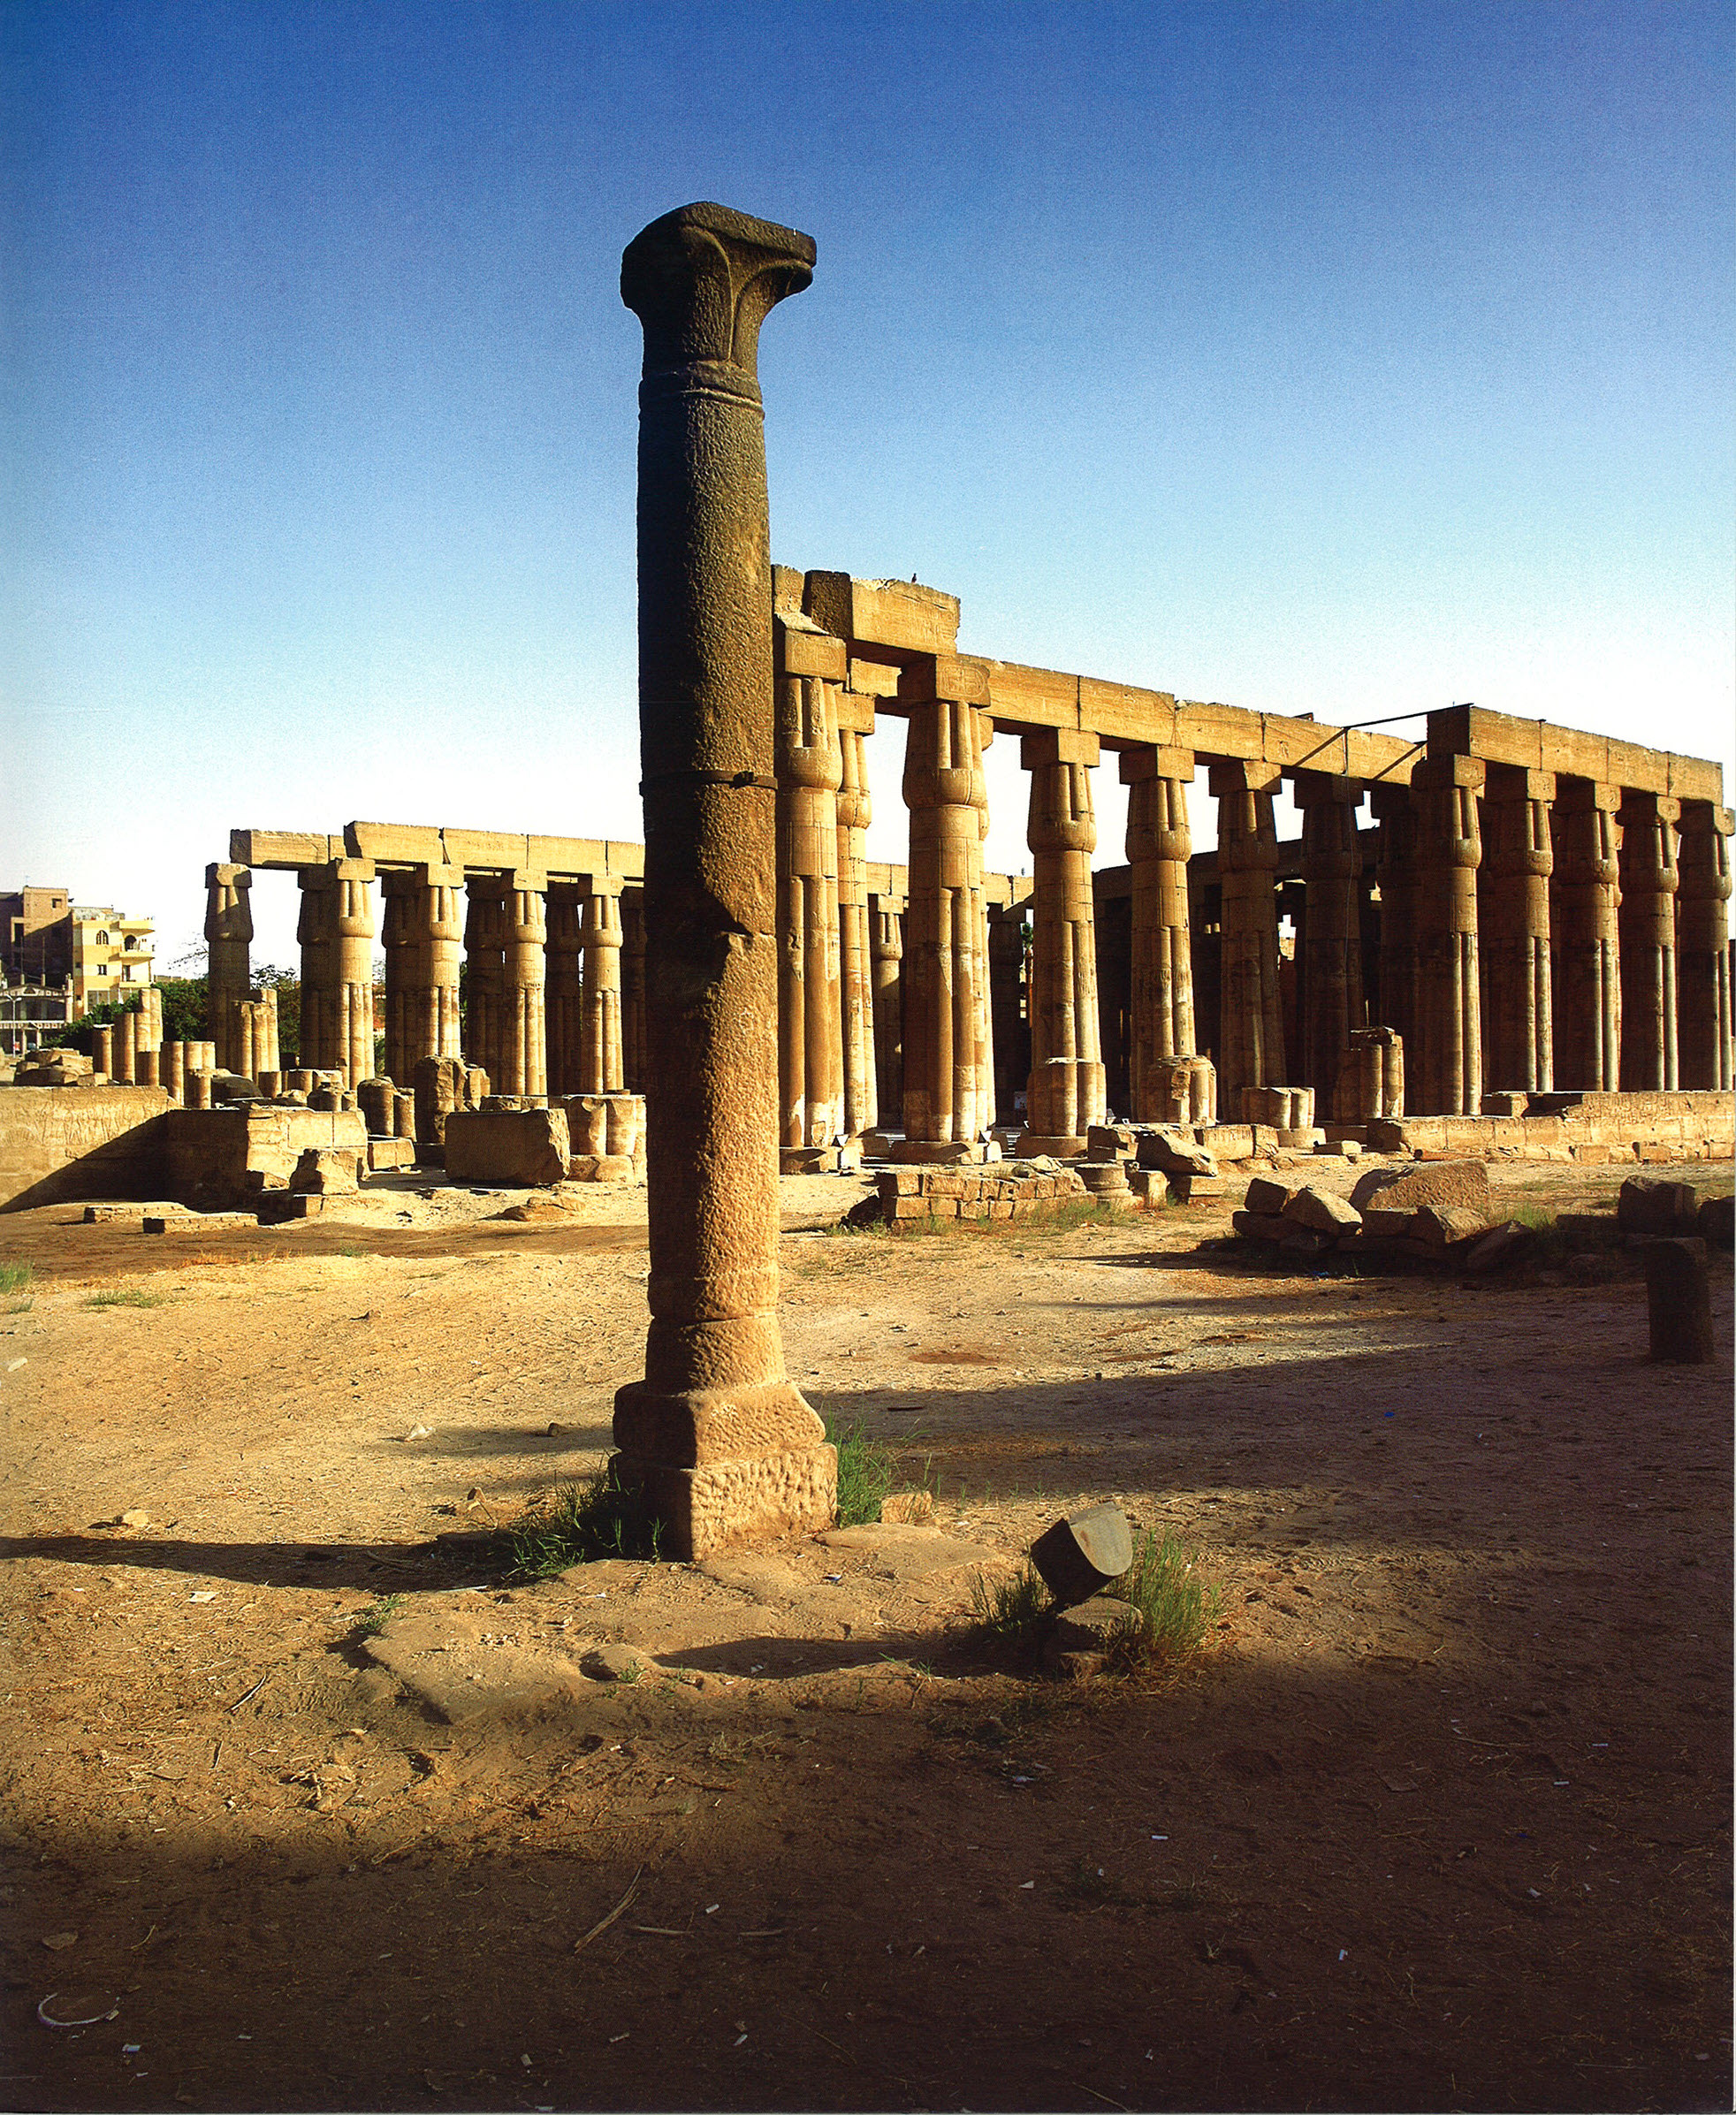 Column of the southwest church in Luxor Temple. In the background is the Forecourt of Amenhotep III.